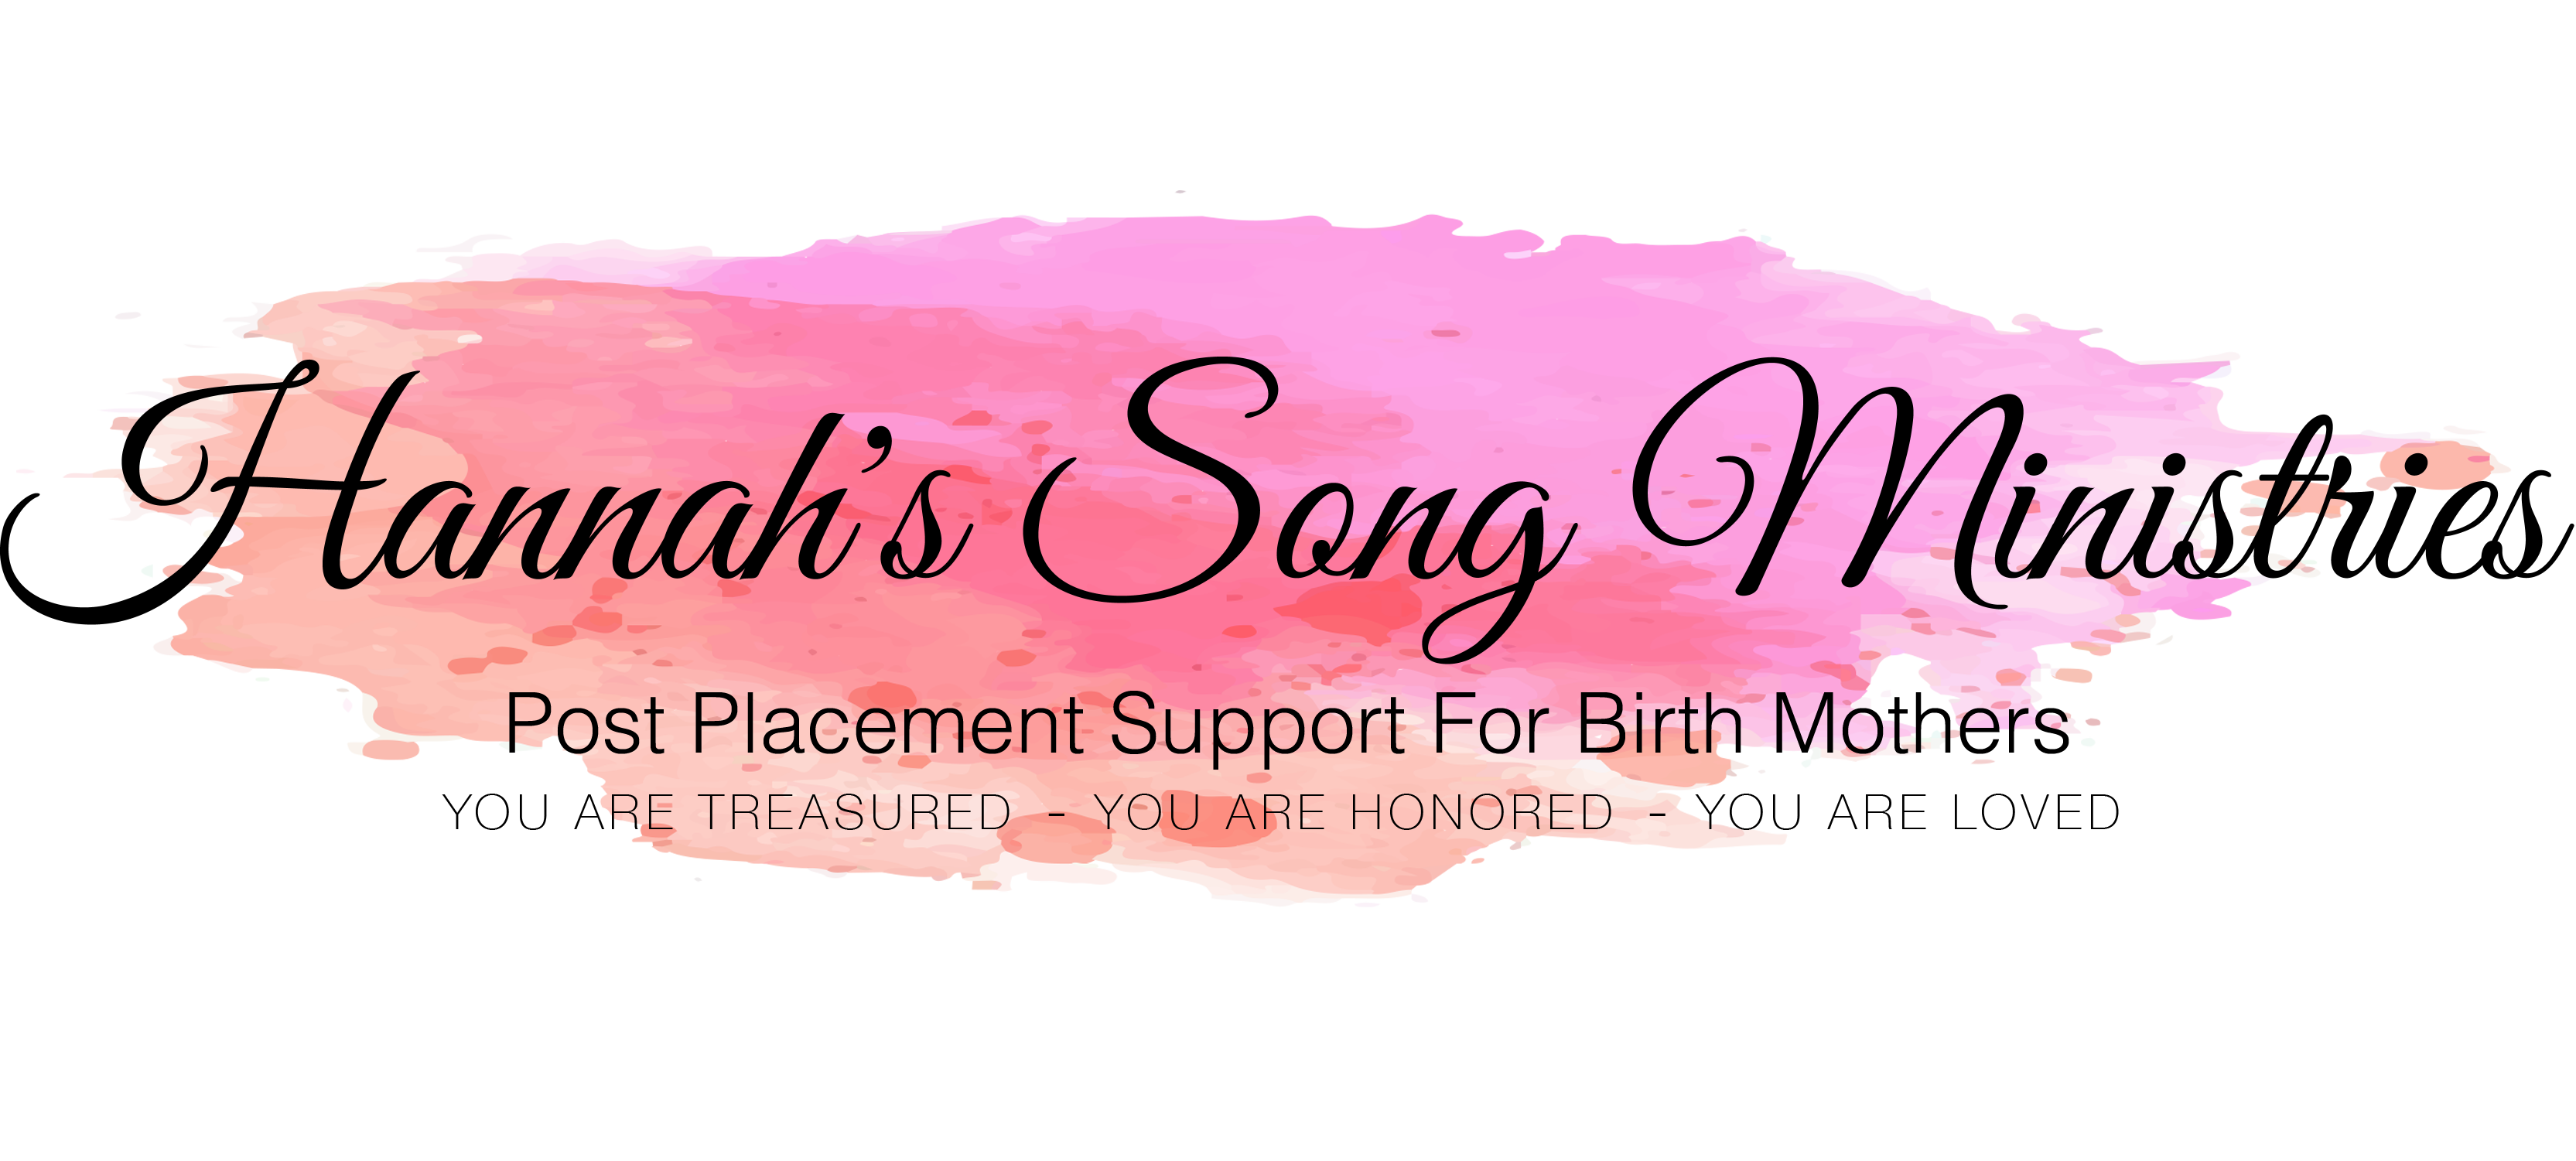 Hannah's Song Ministries